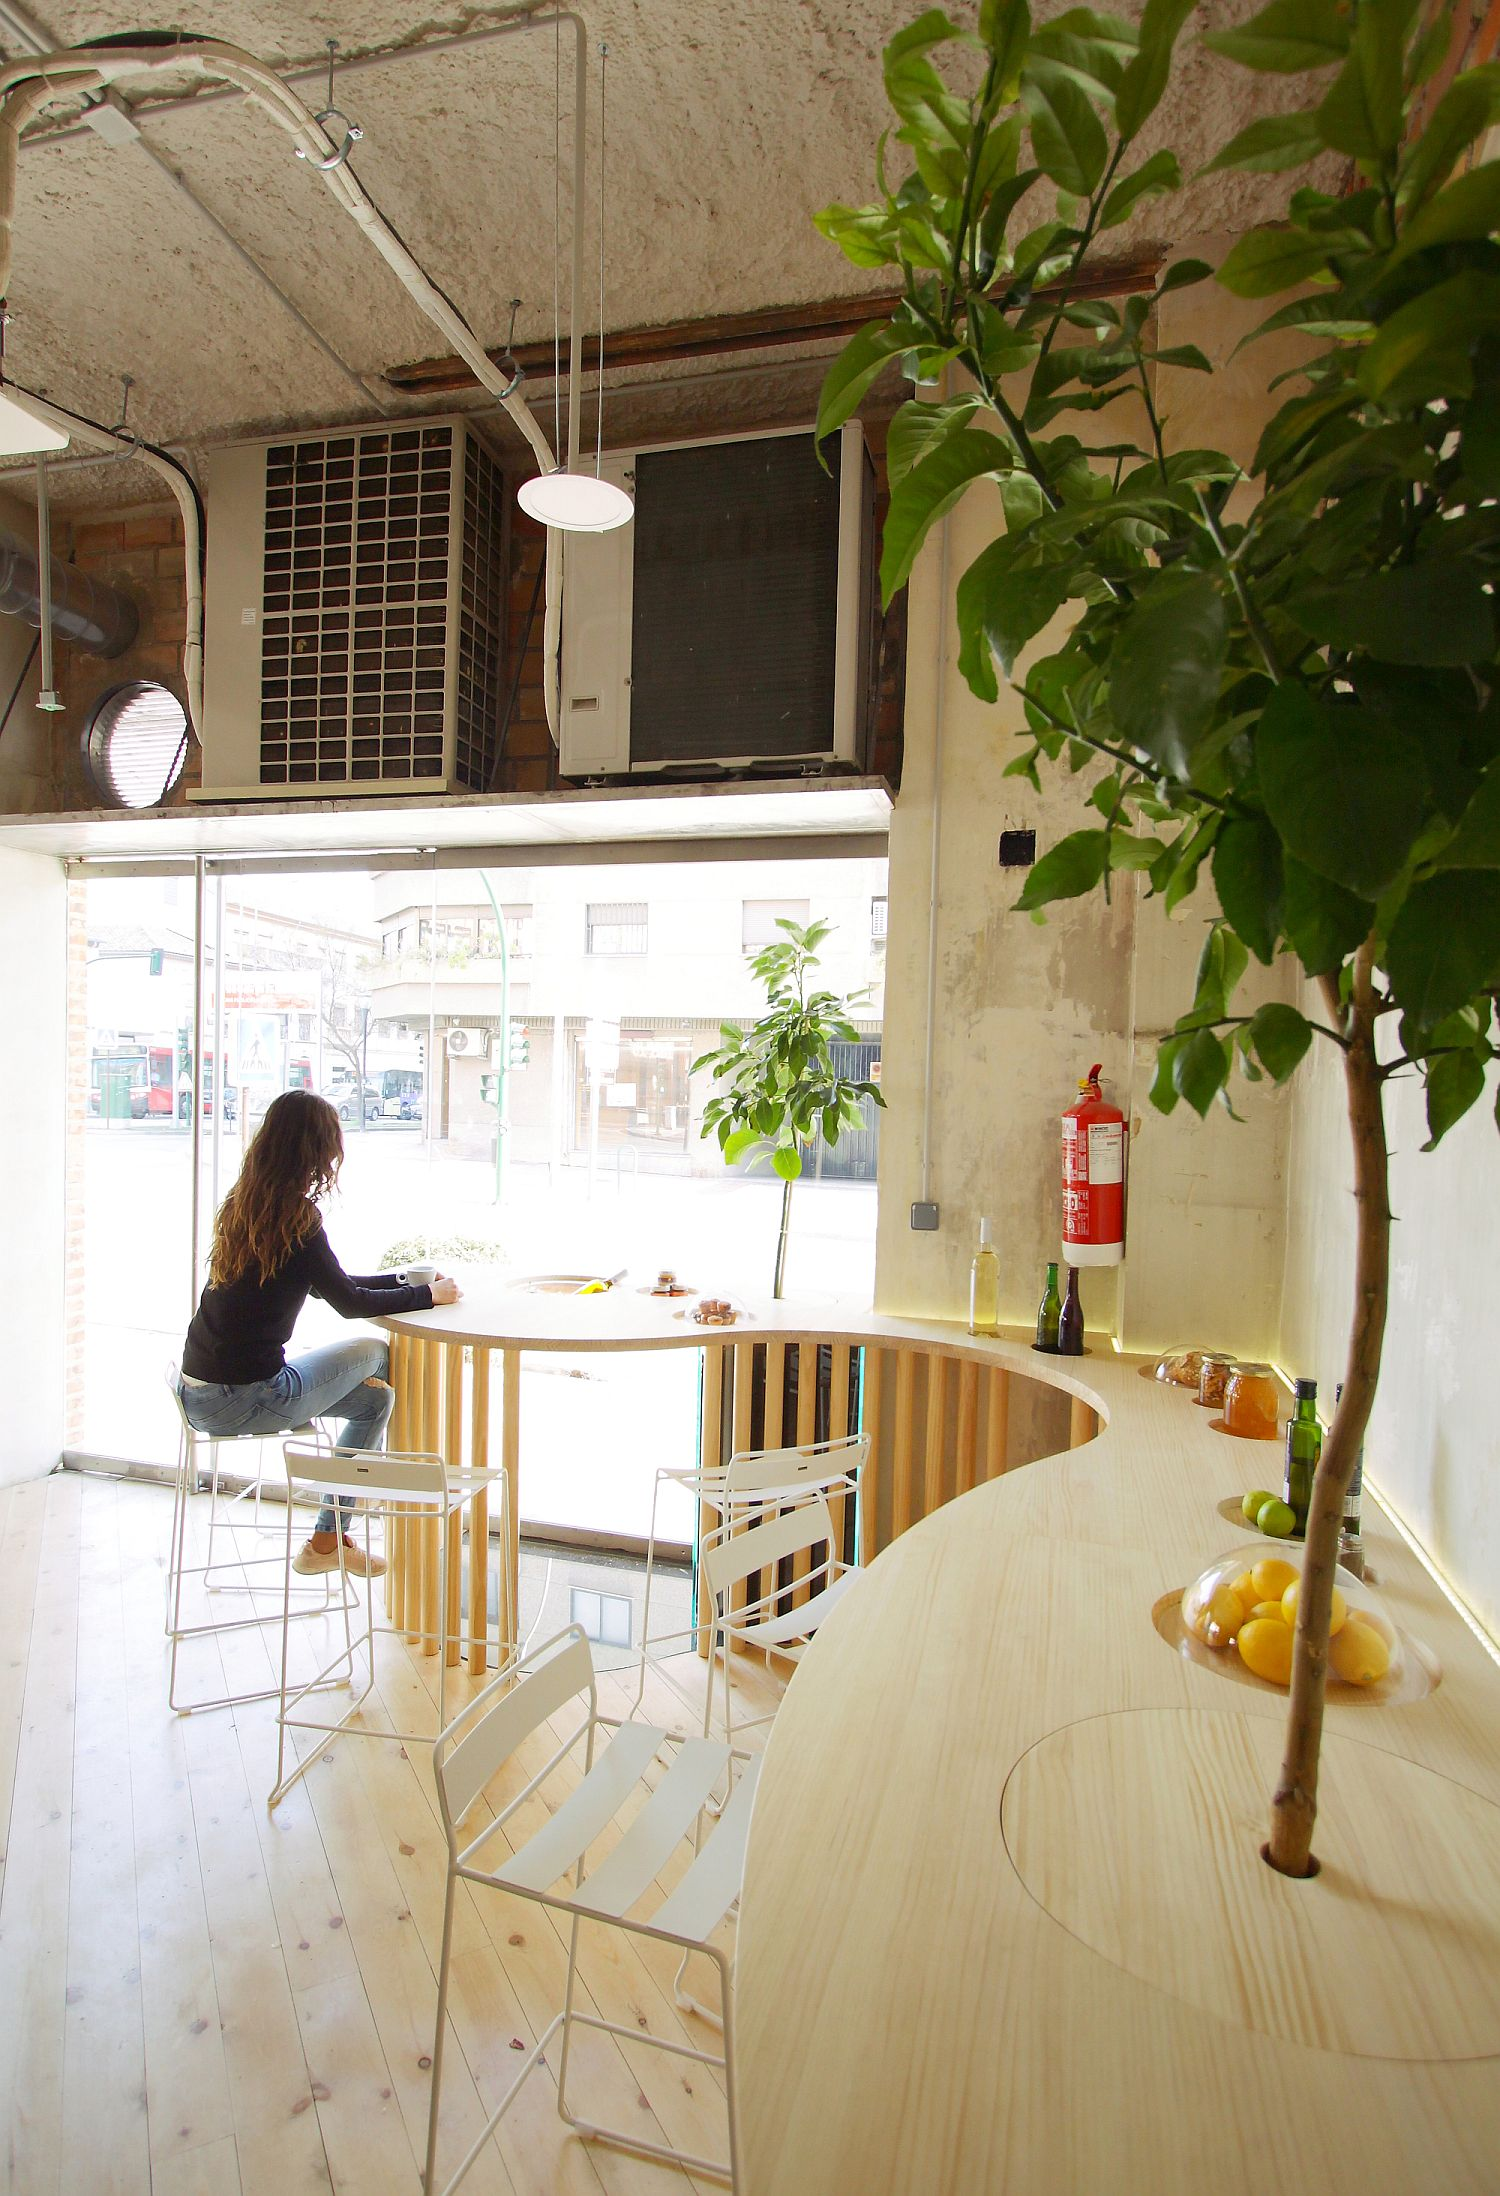 Indoor plants bring greenery to the restaurant